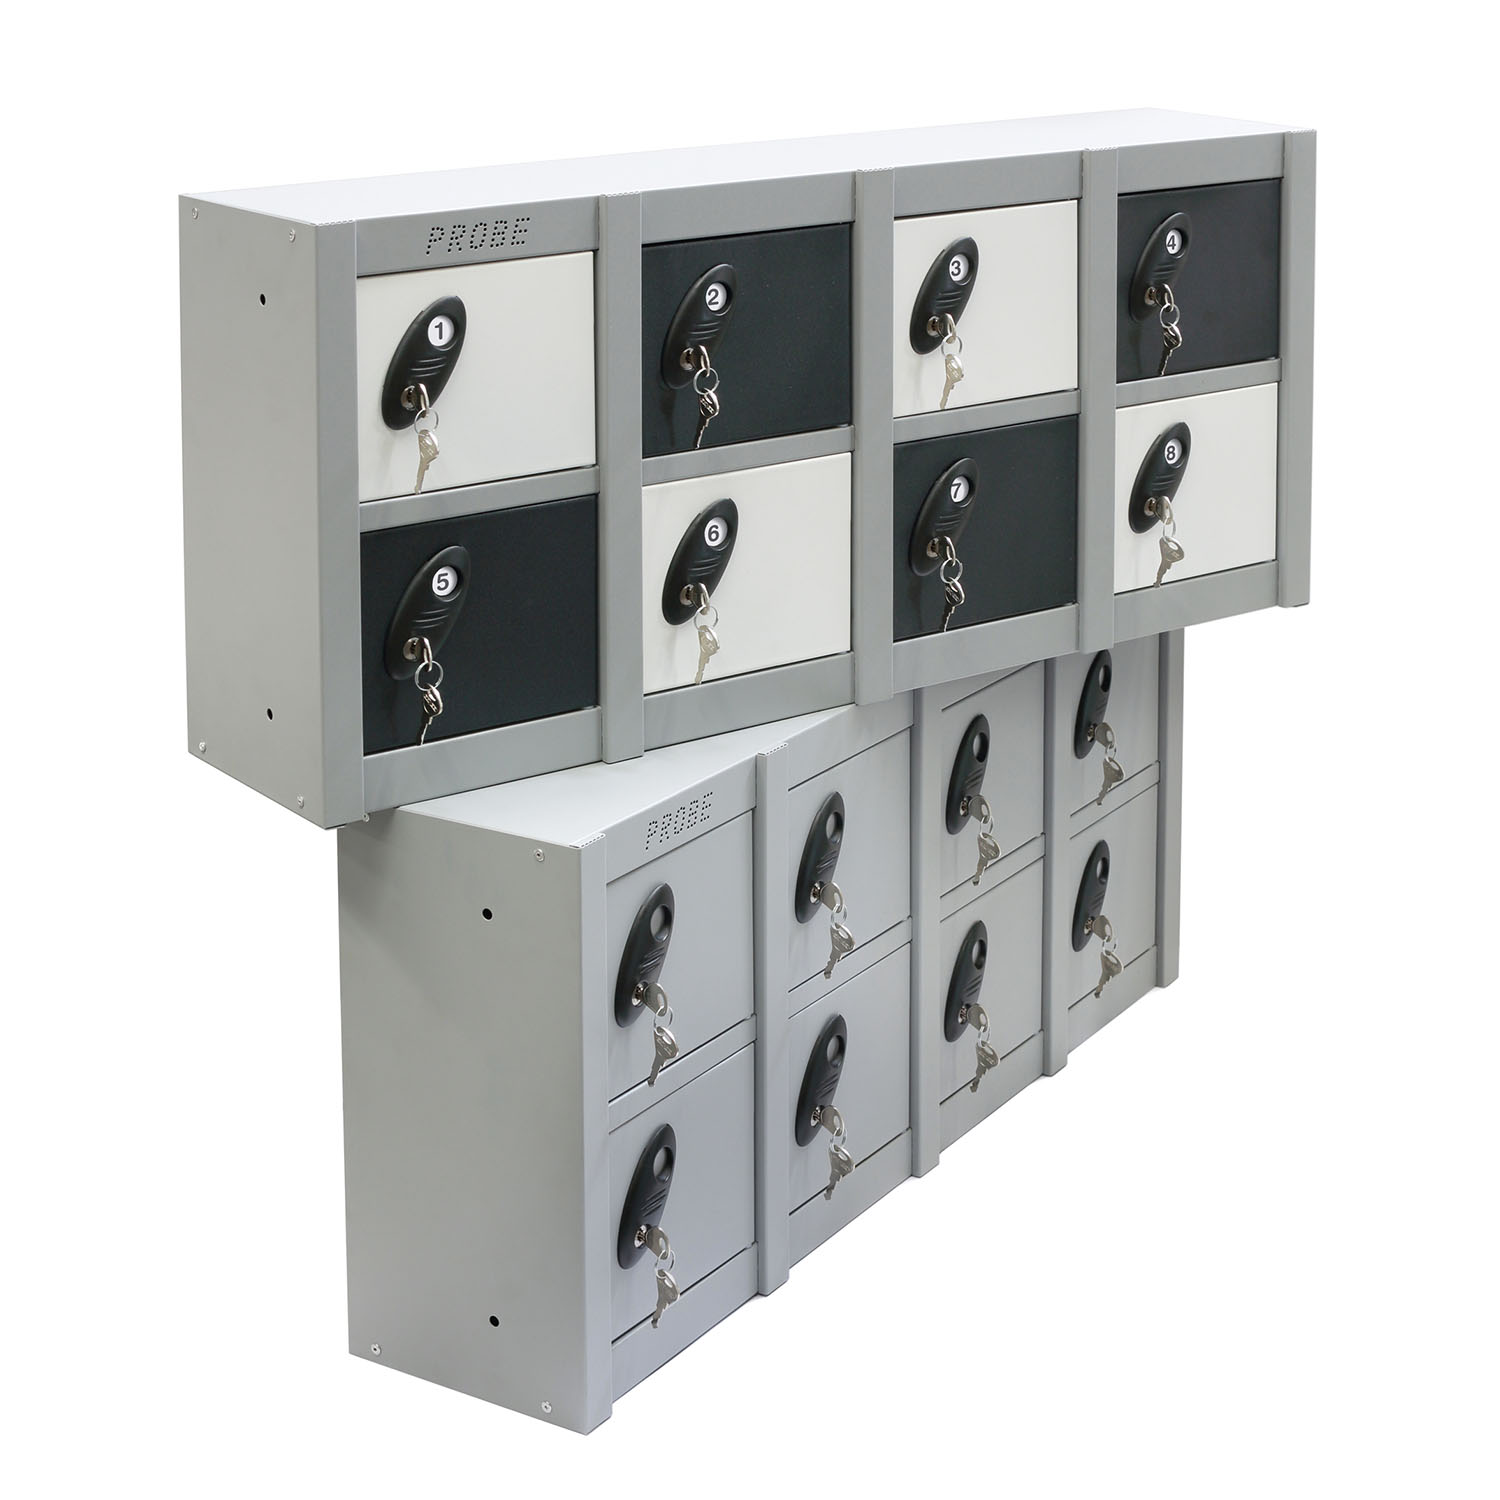 Probe 8 doors minibox lockers in black and white colour